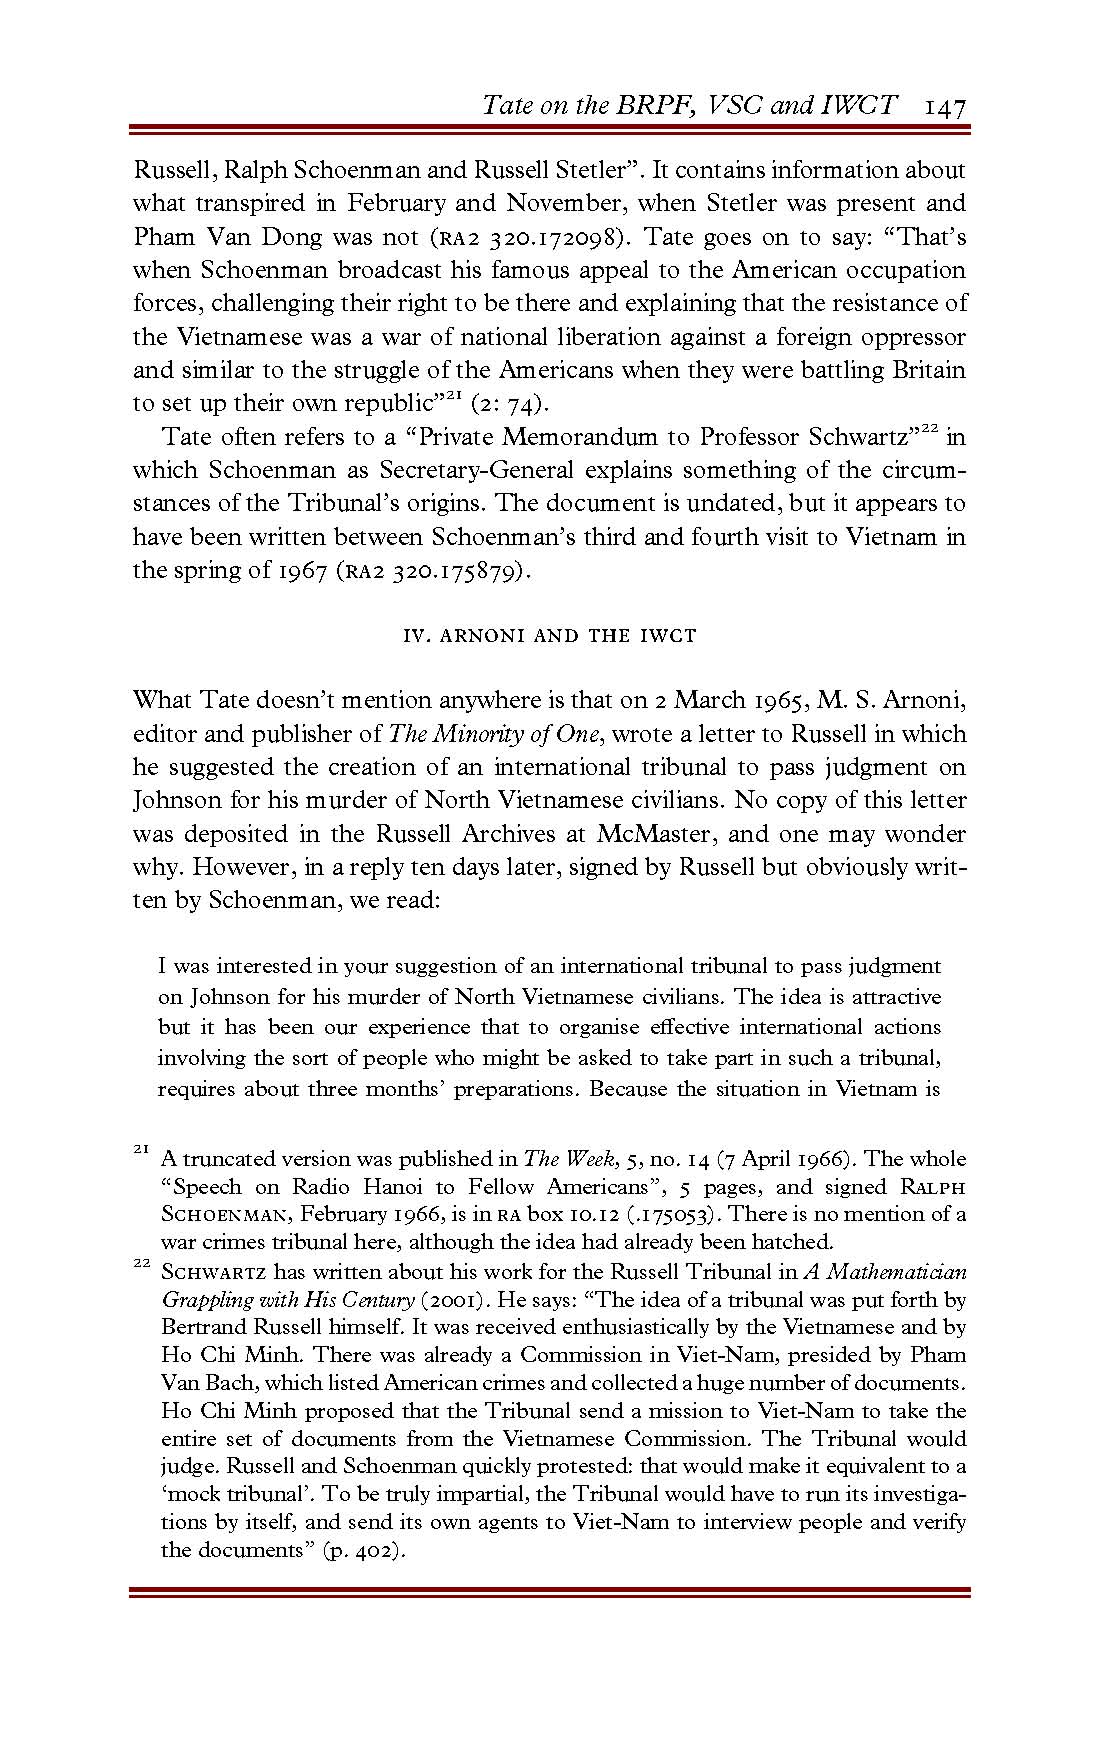 Anderson-- Pages from RJ 3402 050 red-5 (2)-1_Page_13